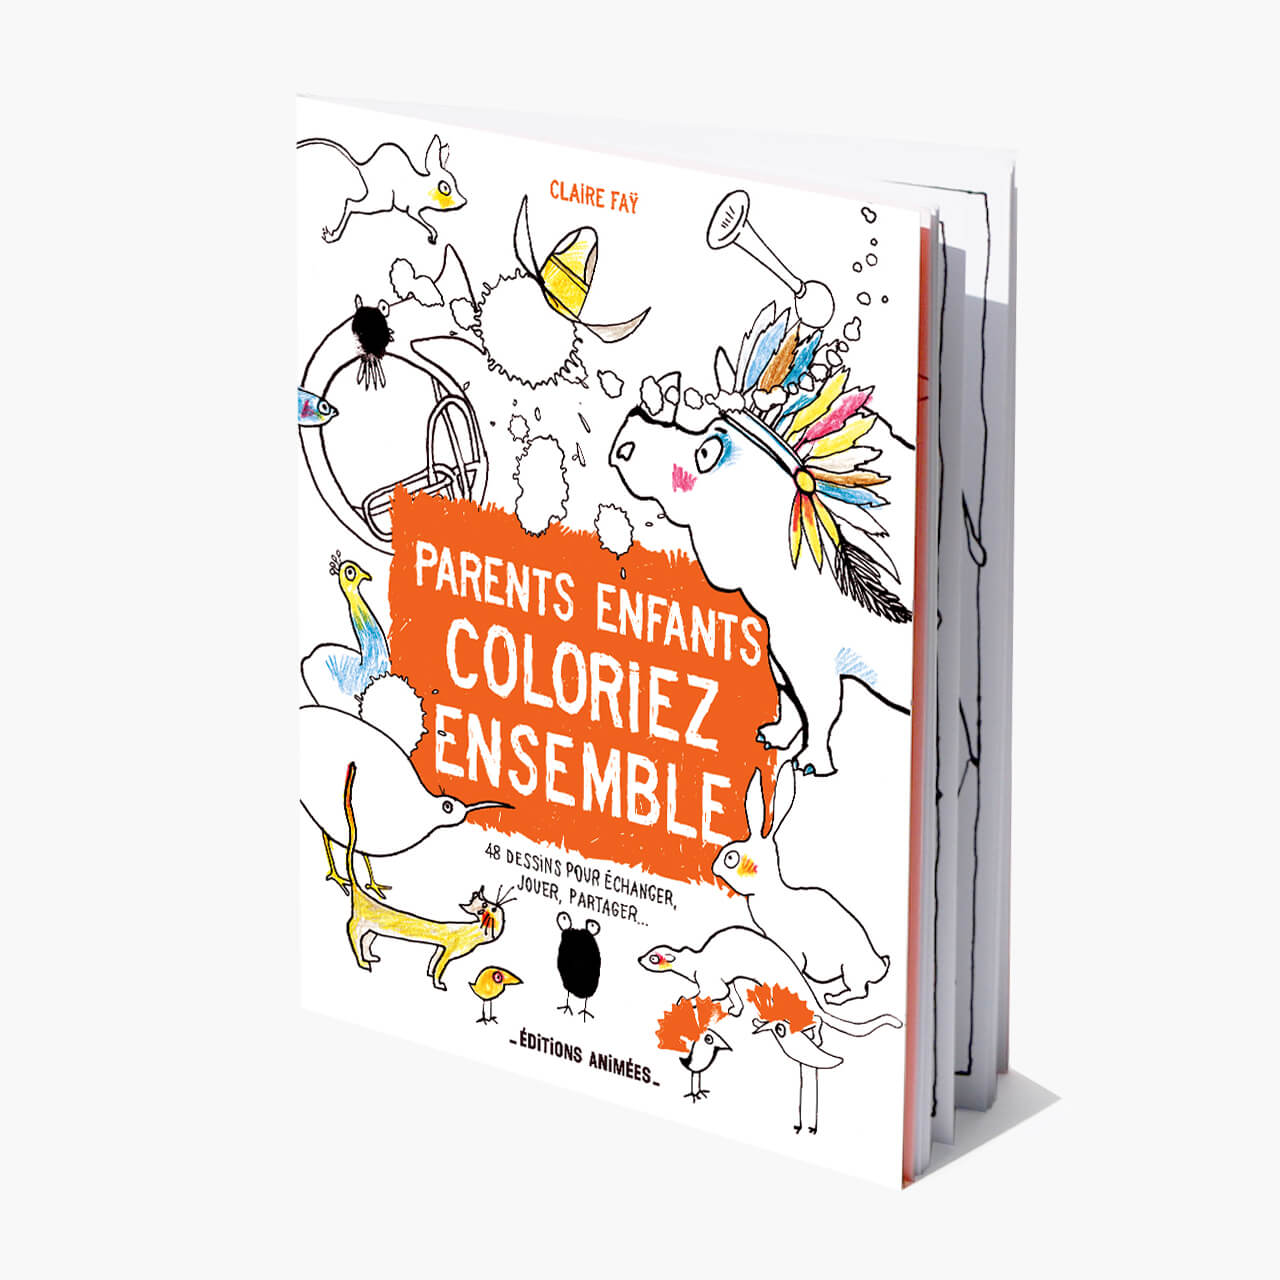 Parents Et Enfants Coloriez Ensemble Editions Animees